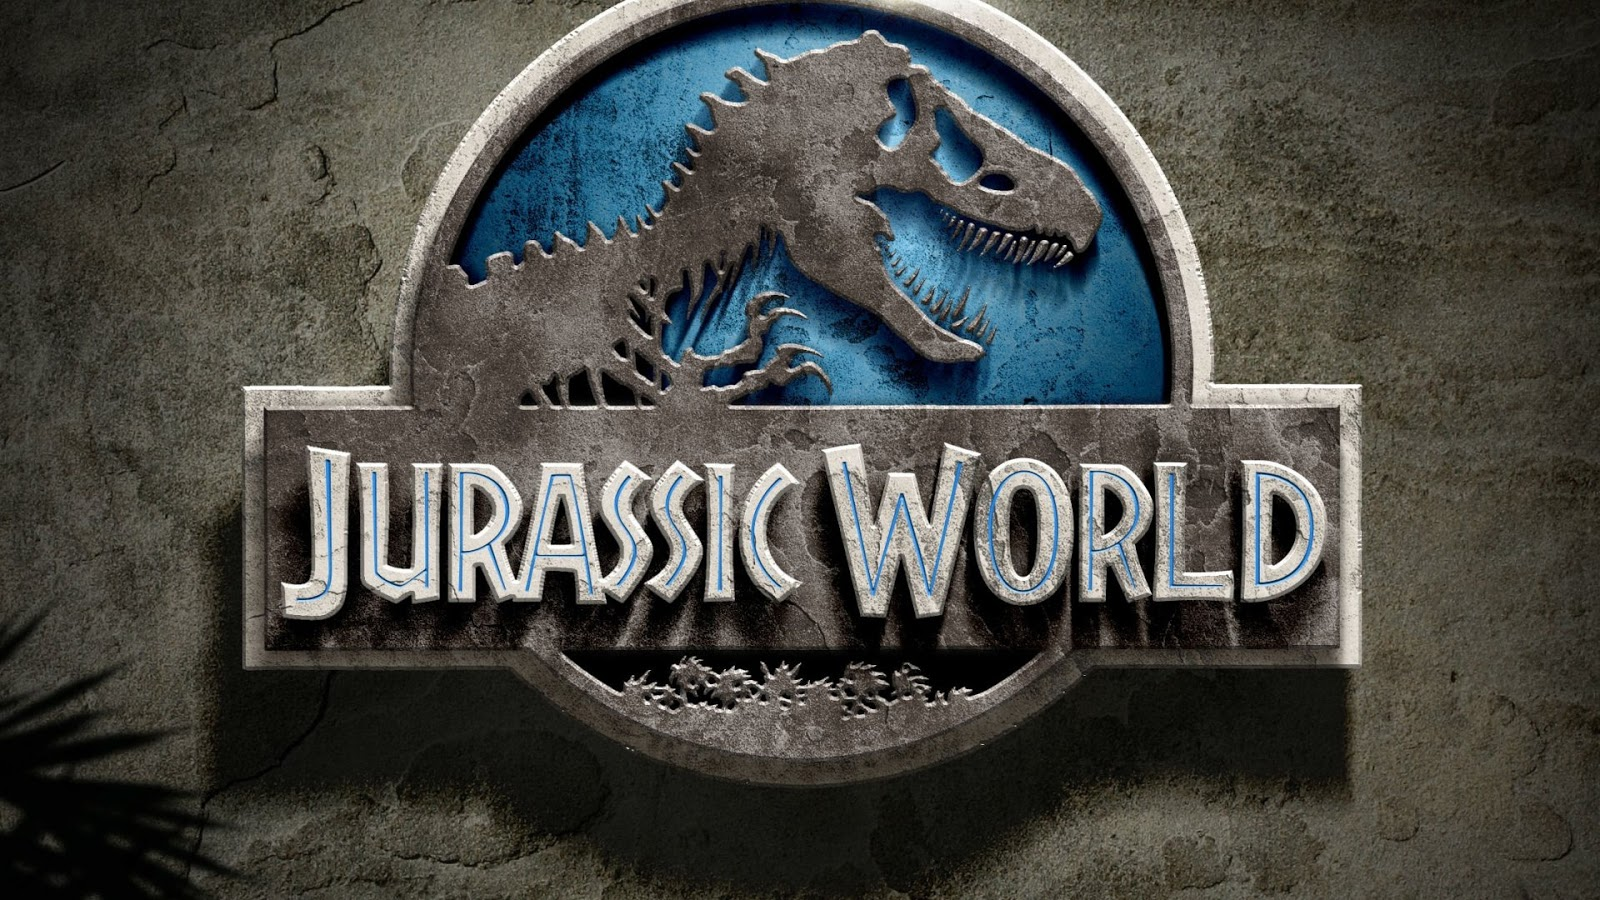 Jurassic World 4 Movie In Hindi Free Download Jurassic-World-The-Game